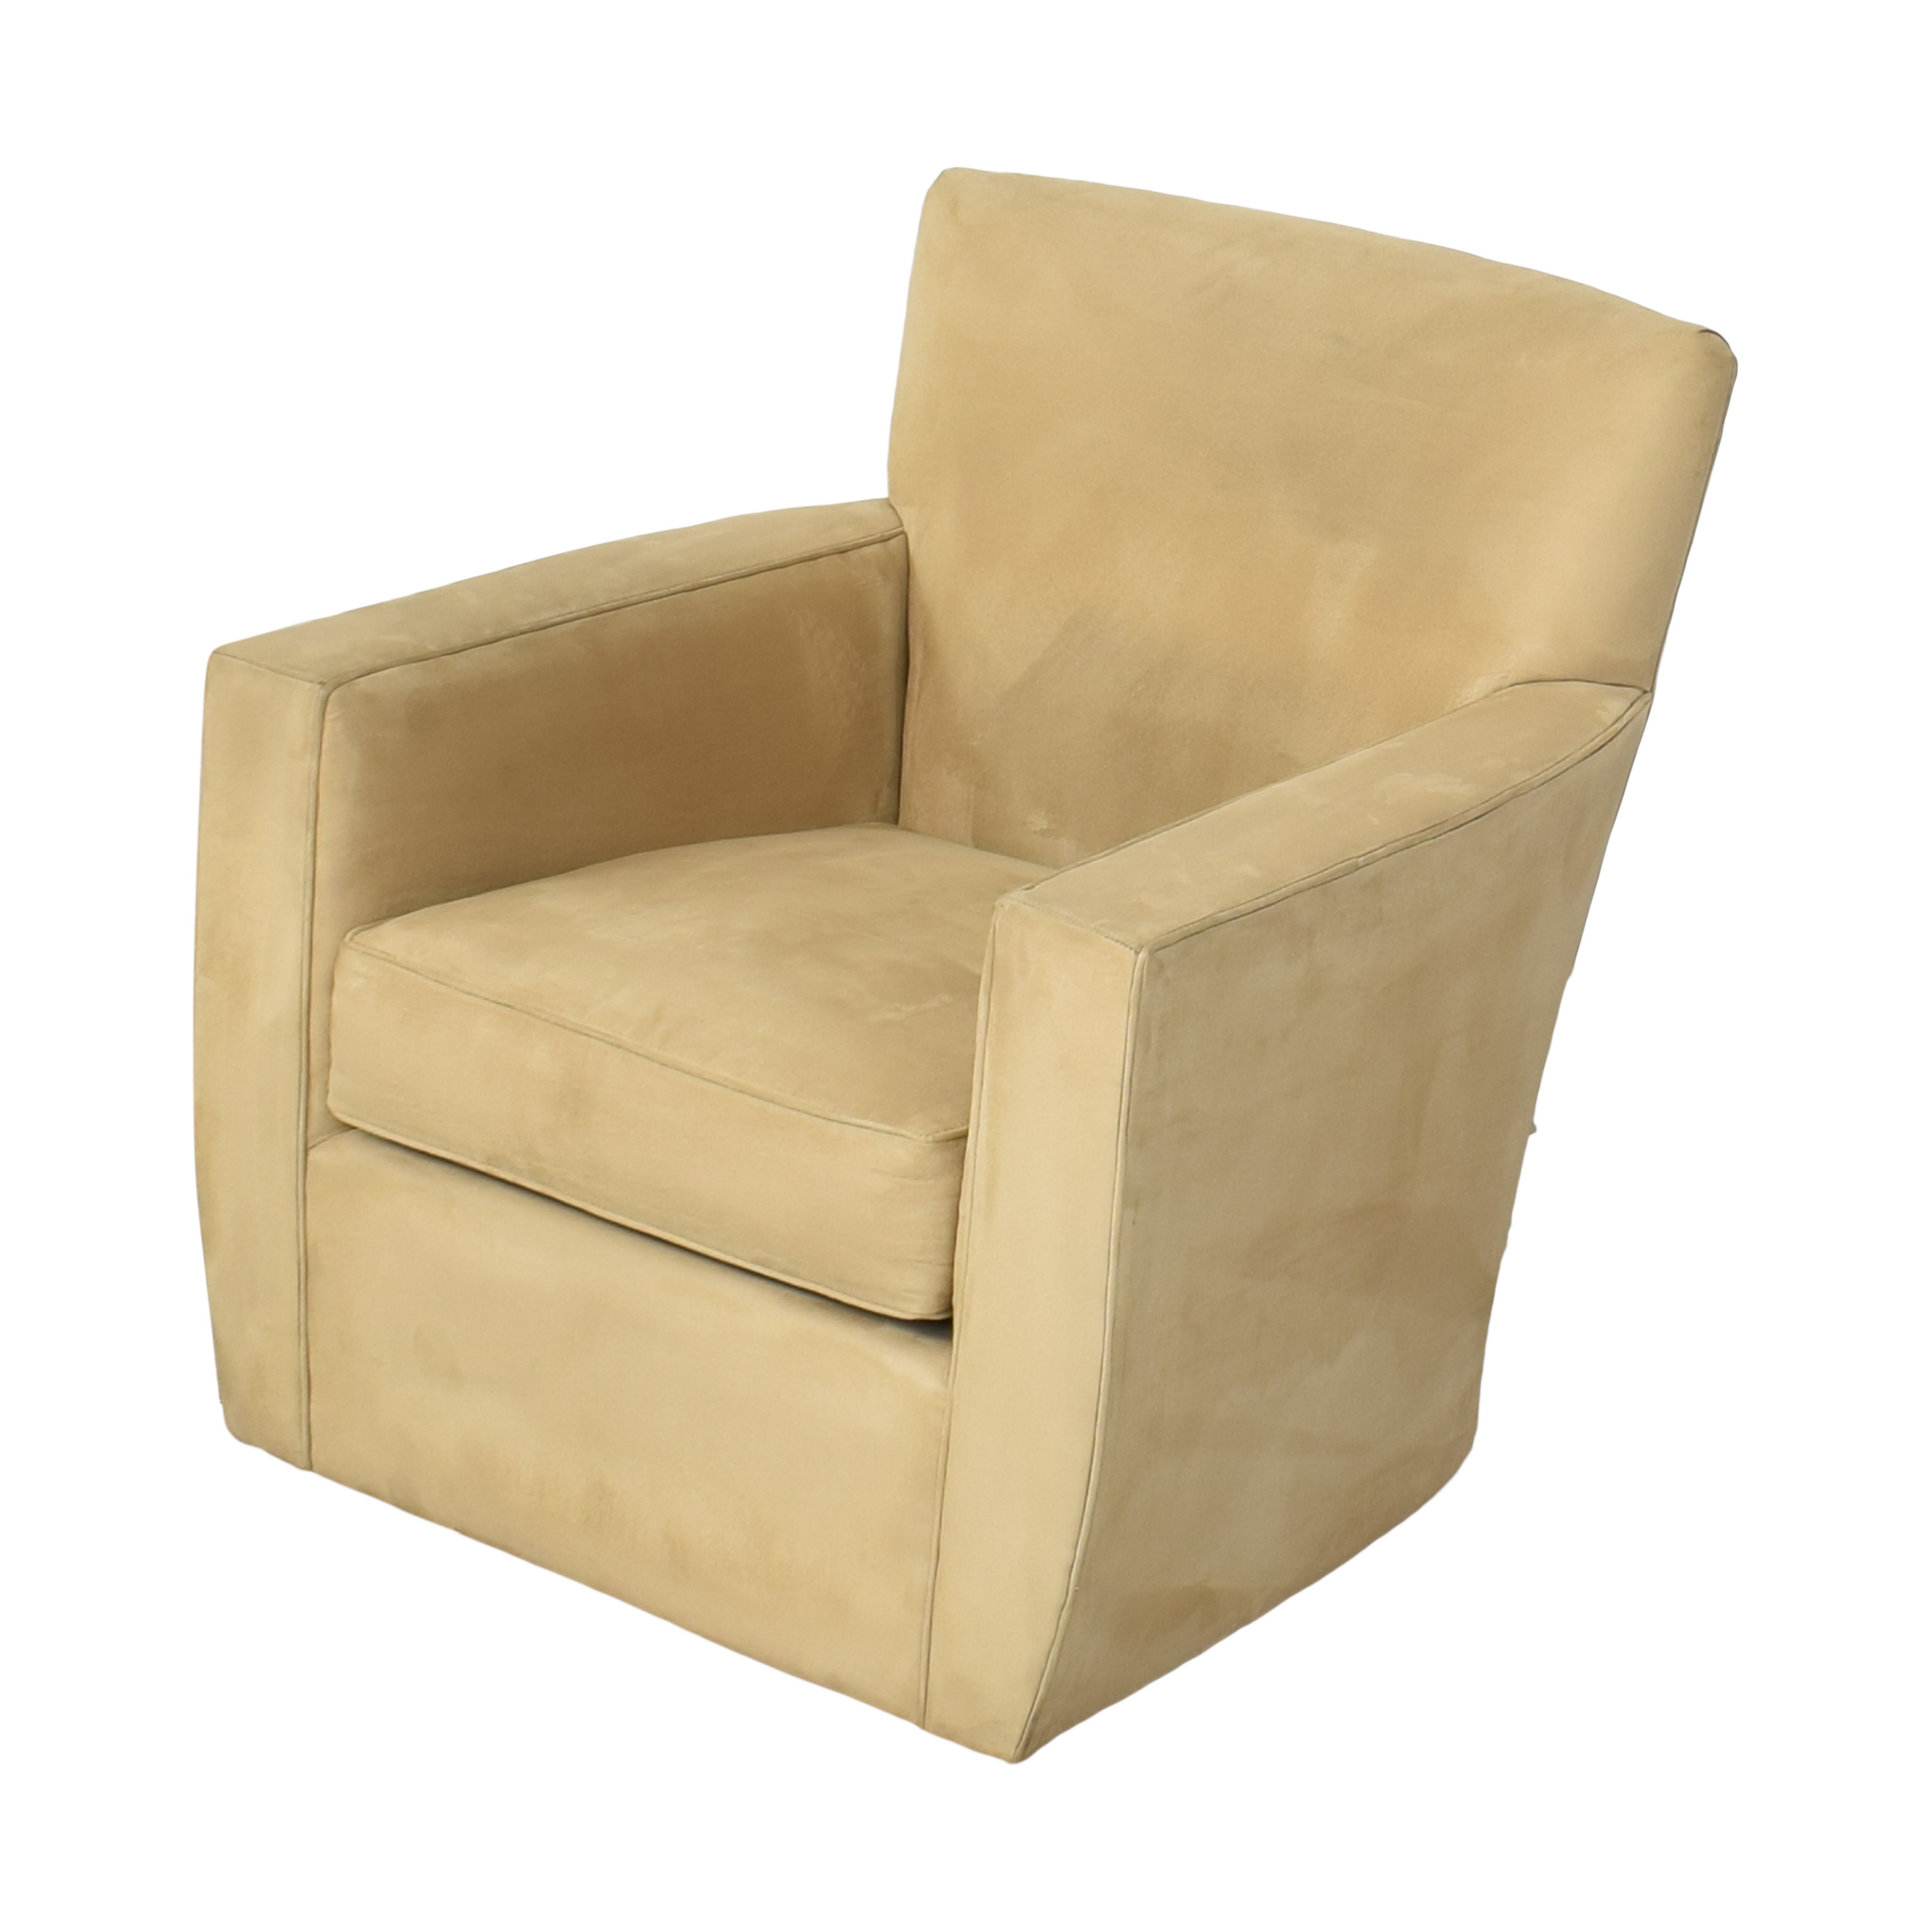 Crate & Barrel Club Chair / Accent Chairs